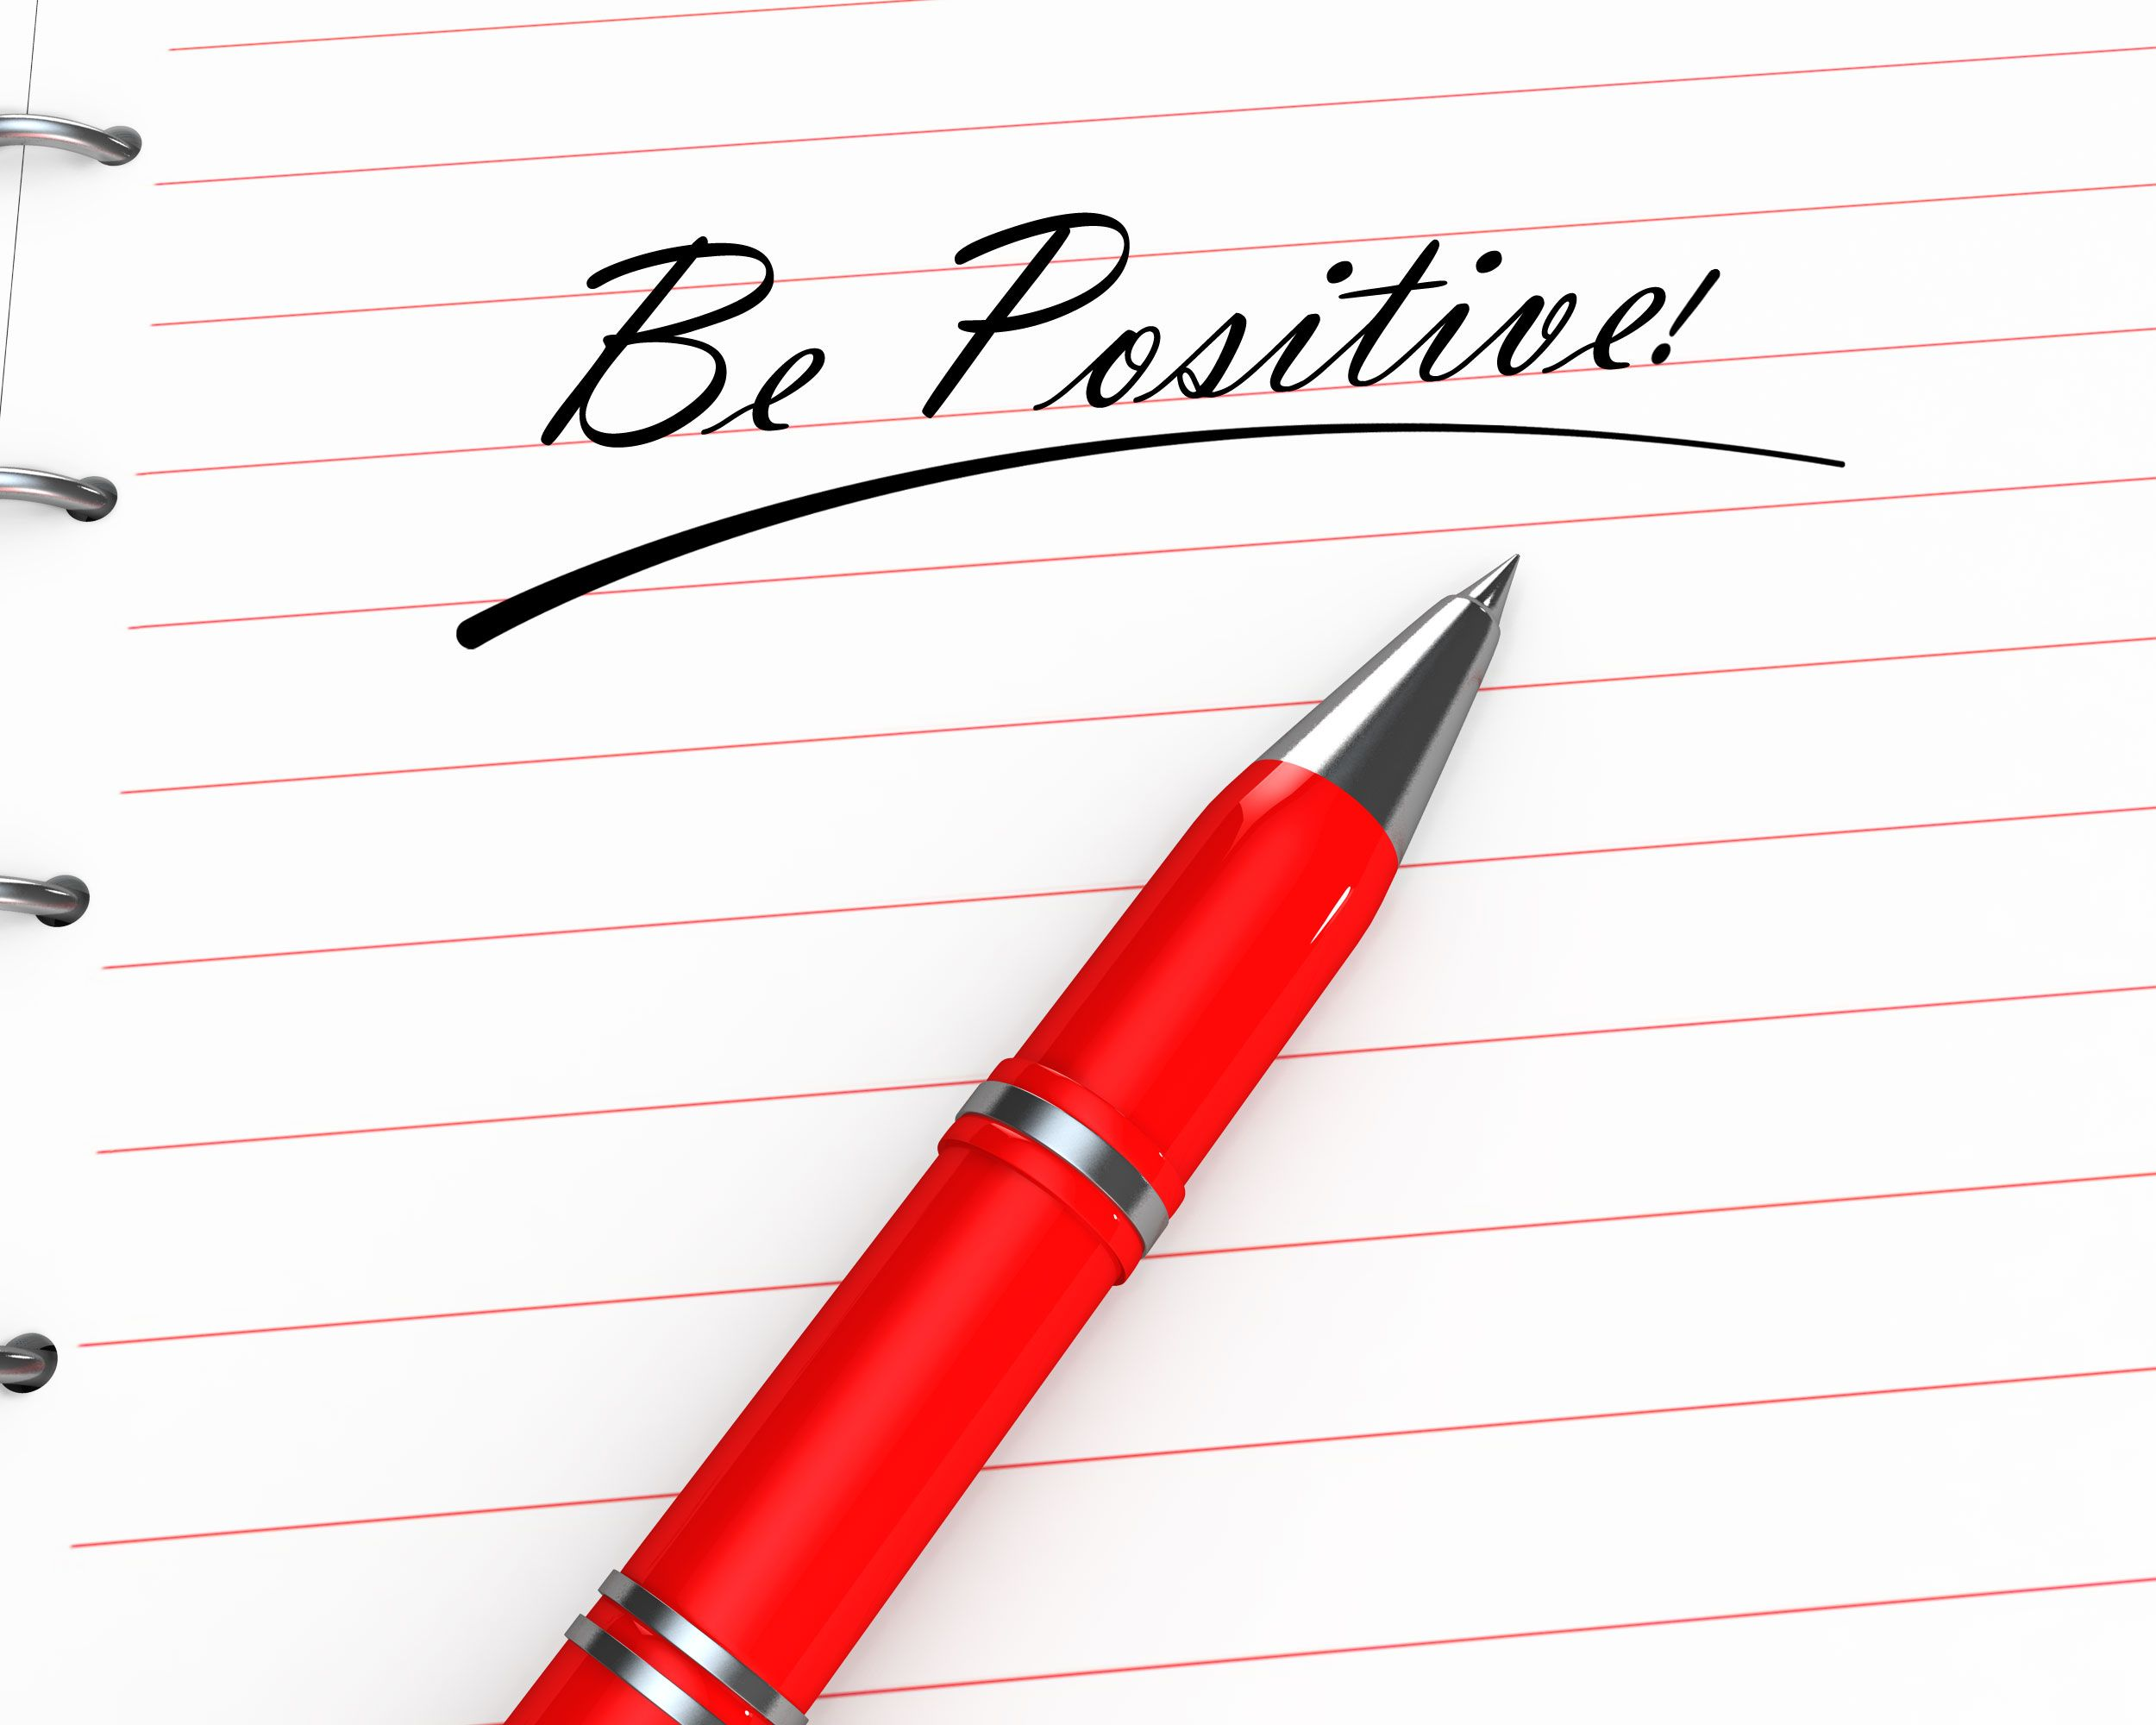 0914_be_positive_text_on_notebook_with_pen_stock_photo_Slide01